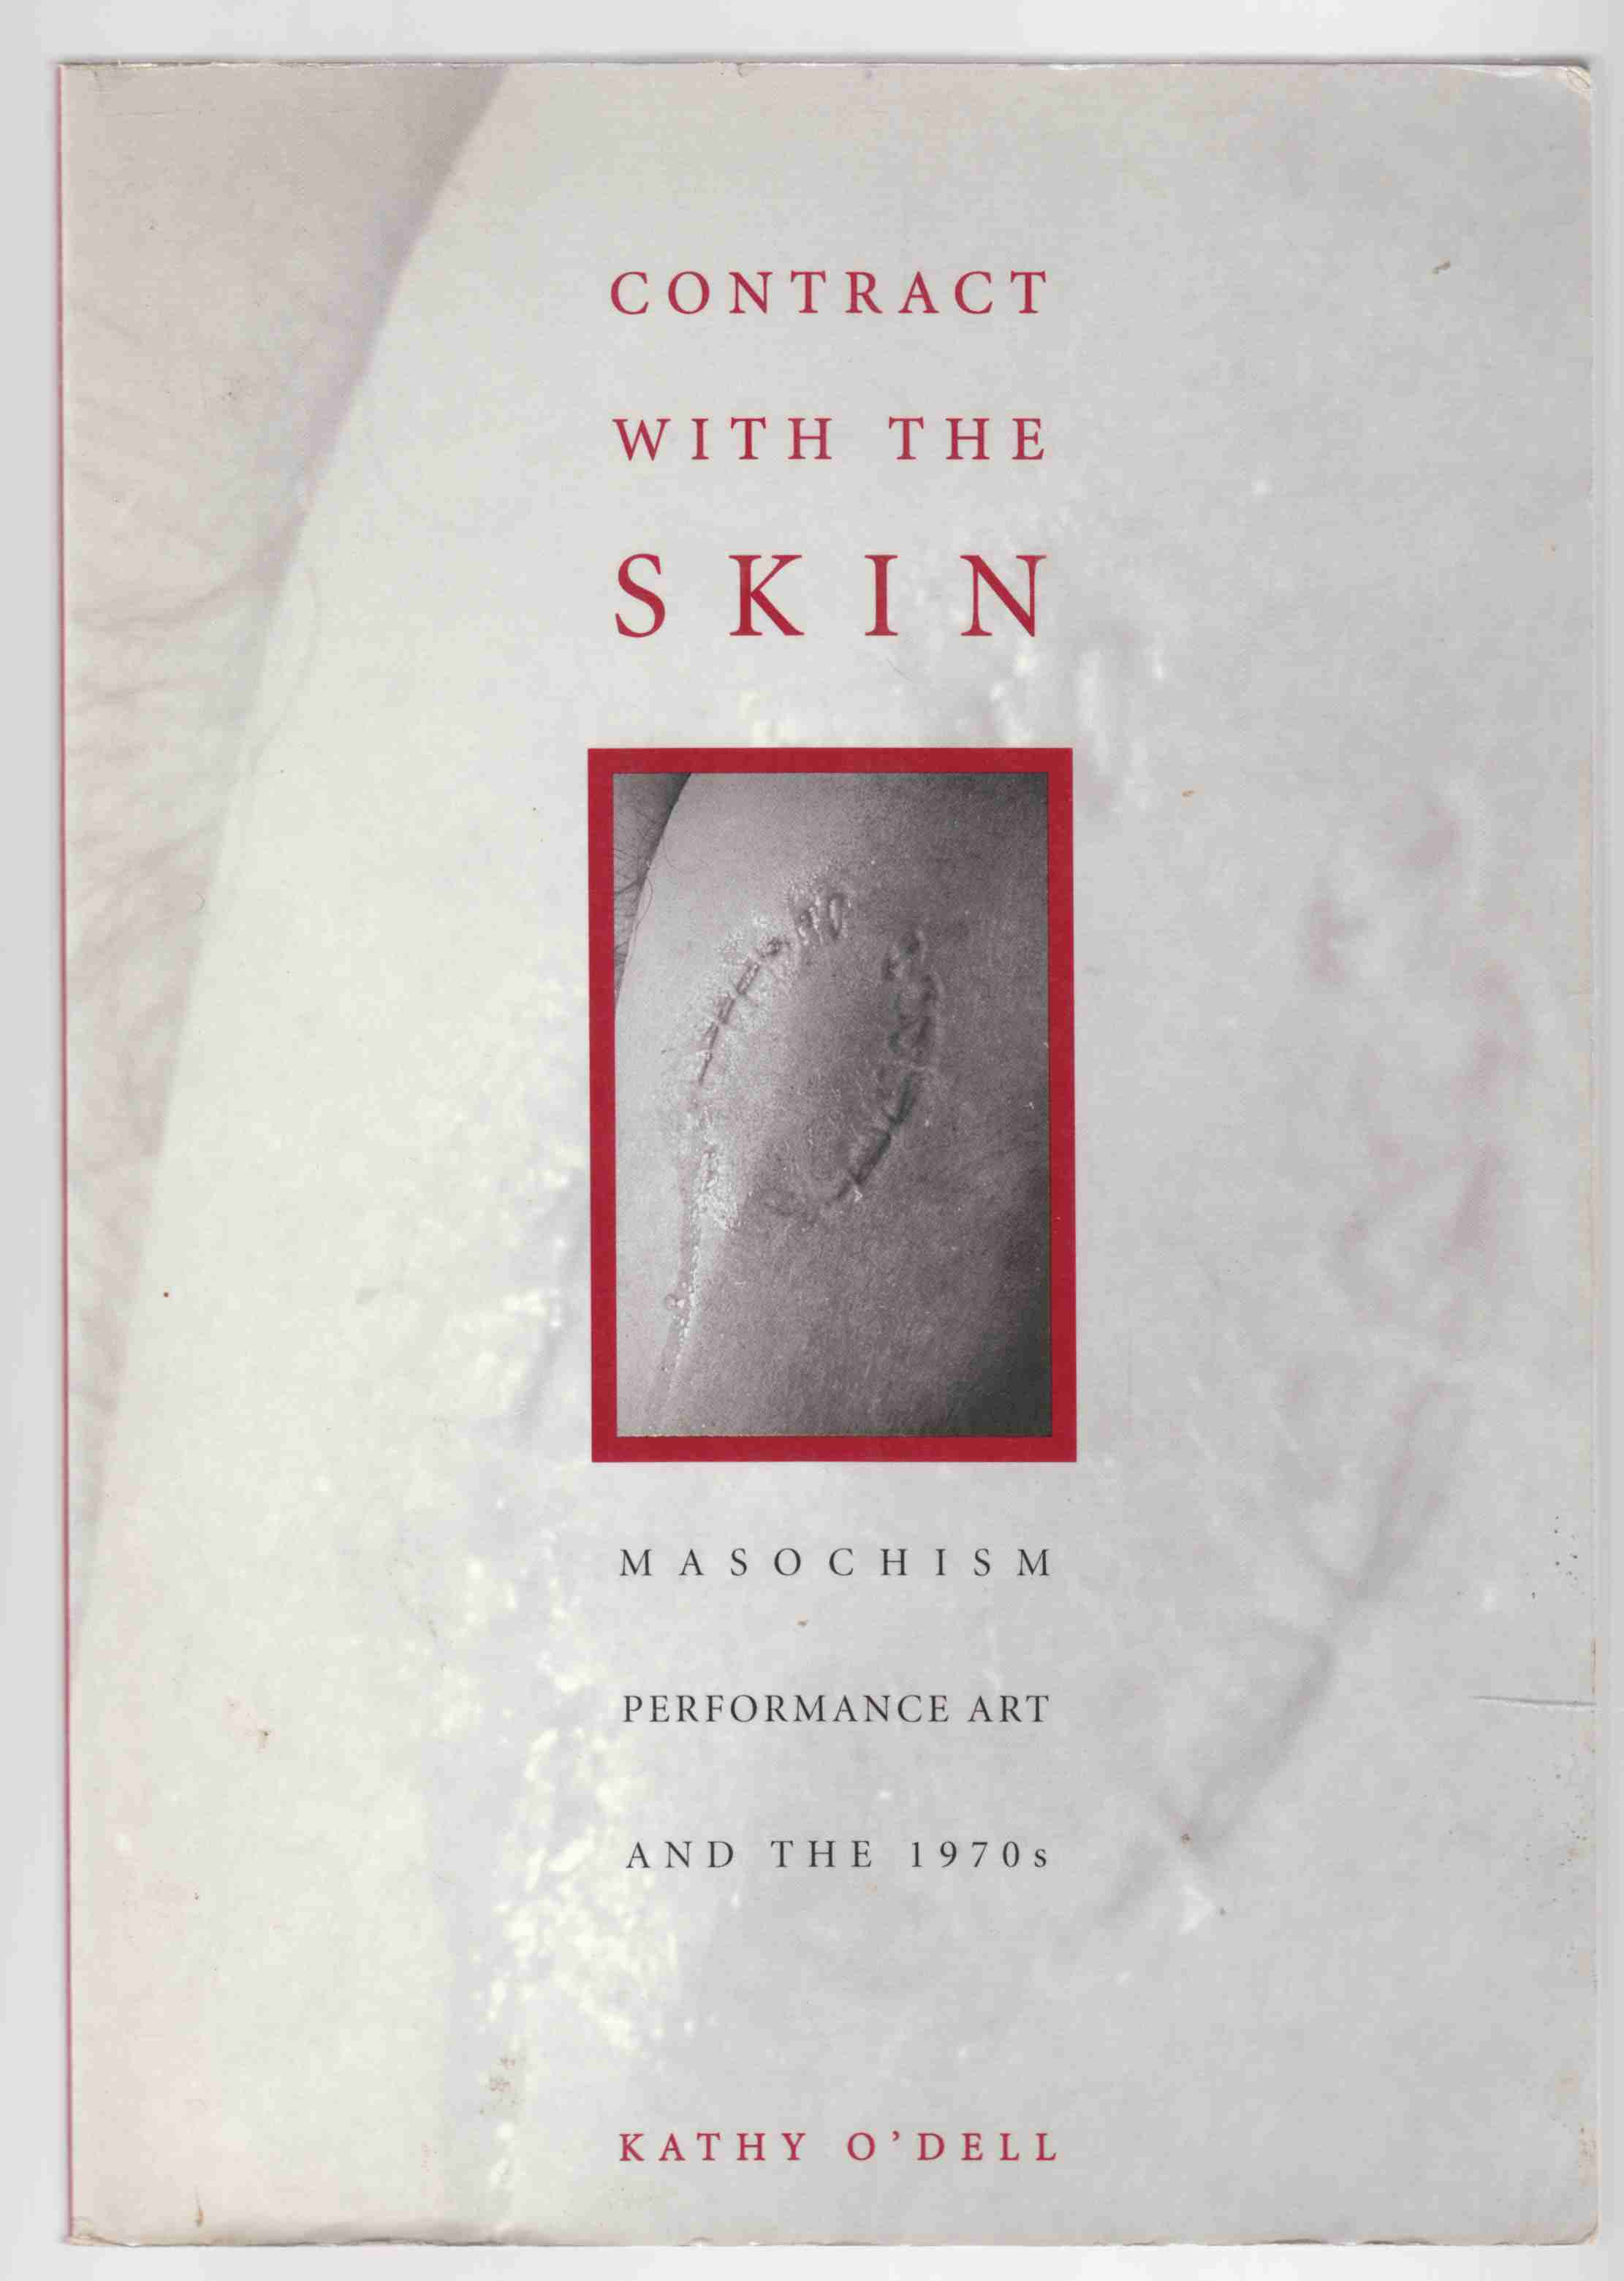 Image for Contract with the Skin Masochism and Performance Art in the 1970s